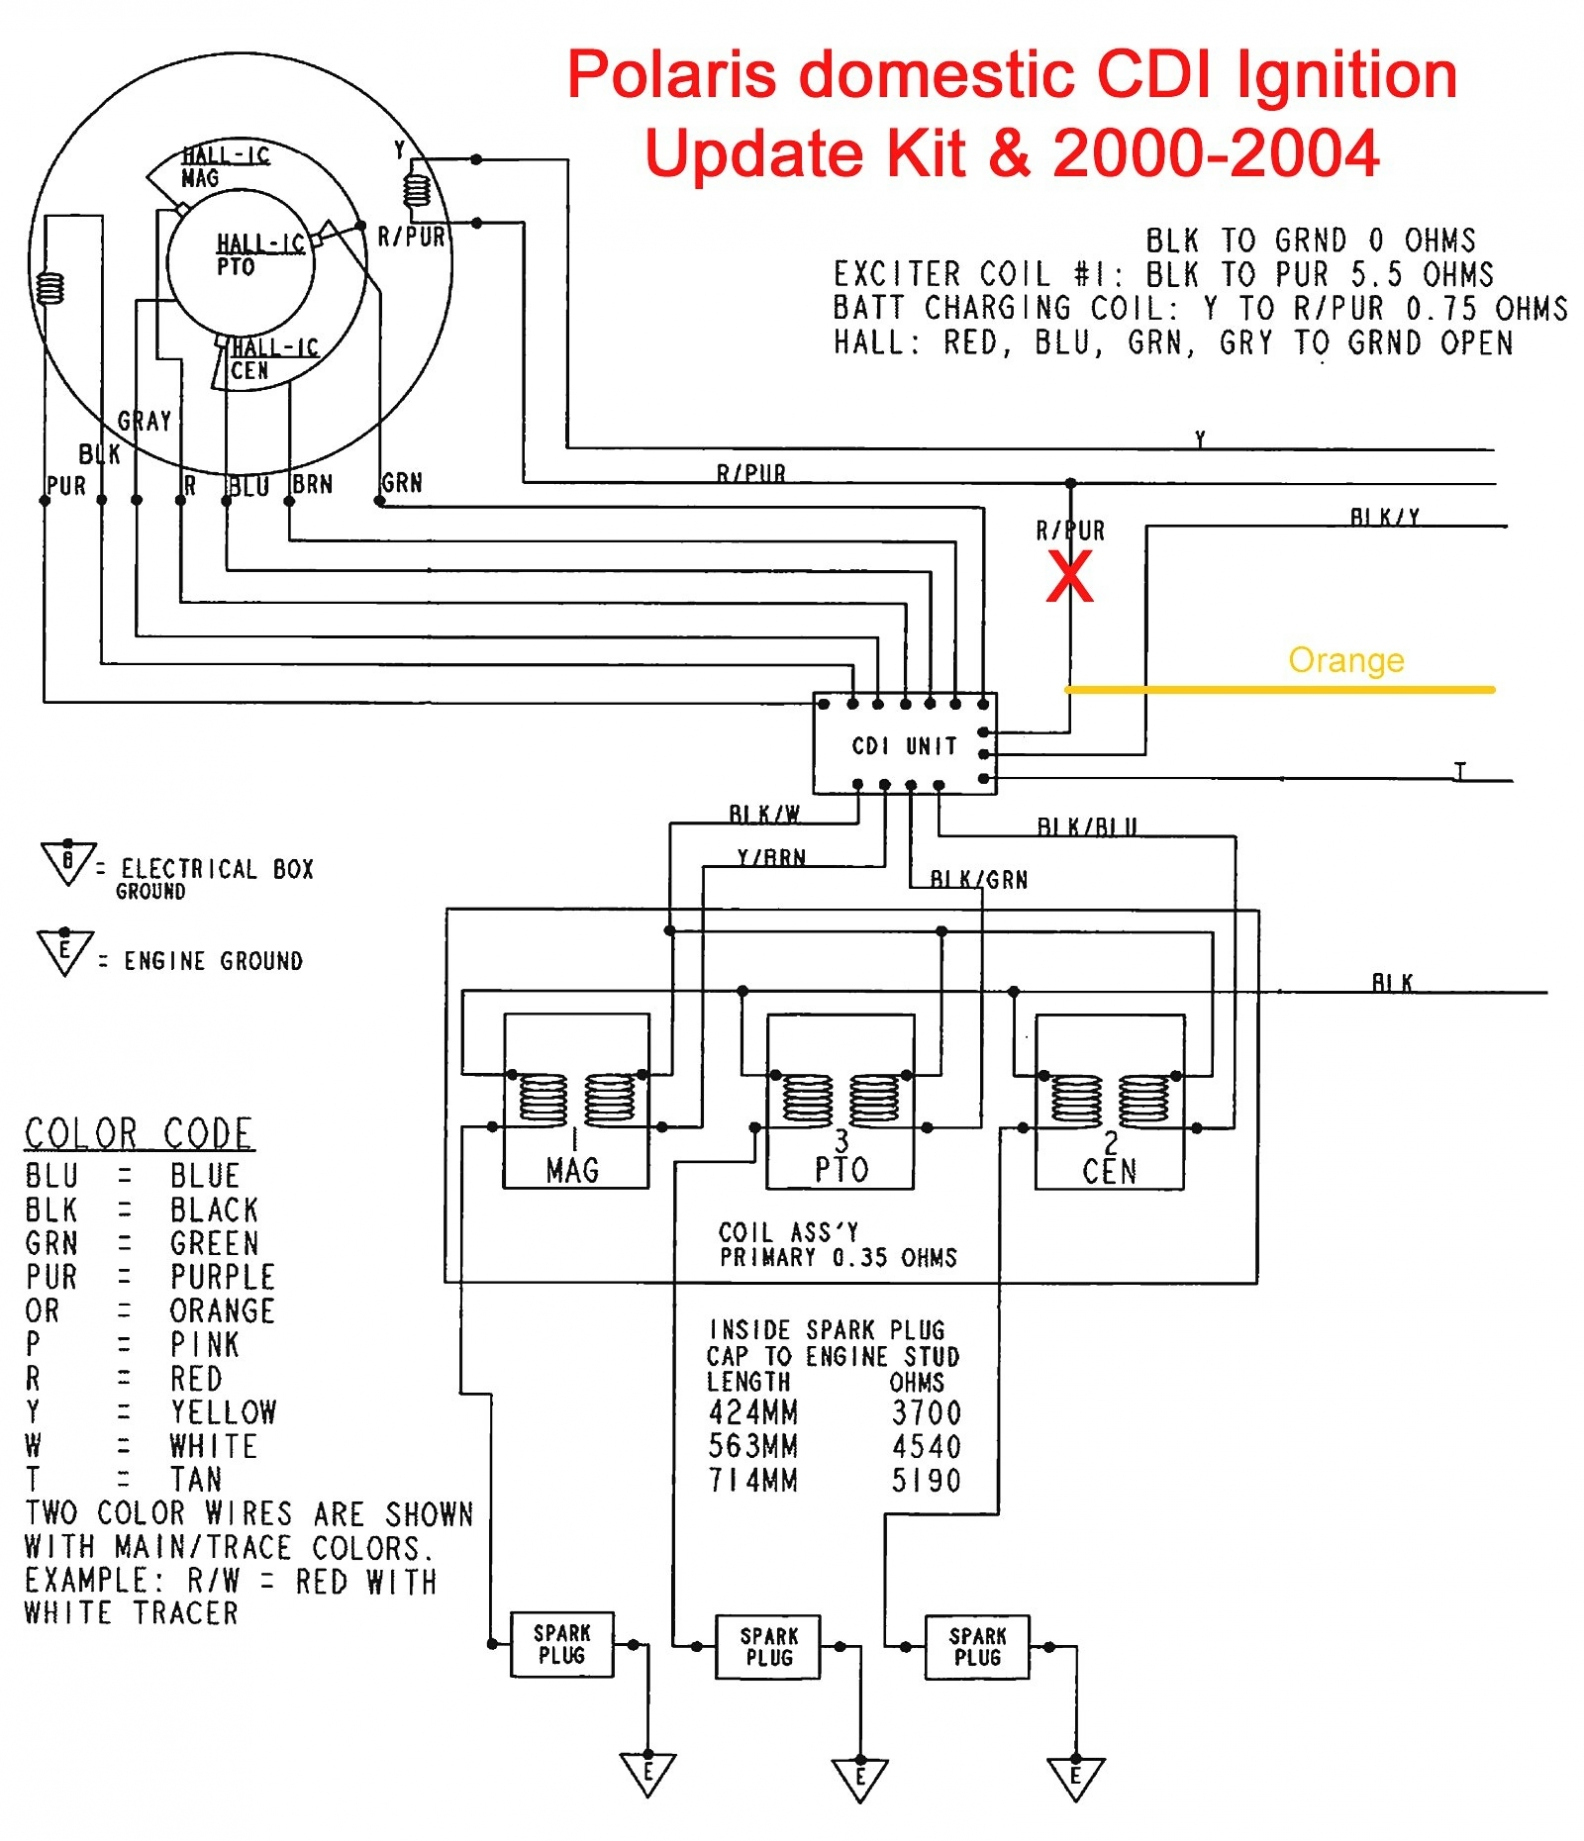 Western Plow Wiring Diagram Best Boss Plow Wiring Diagram New - Western Plow Wiring Diagram